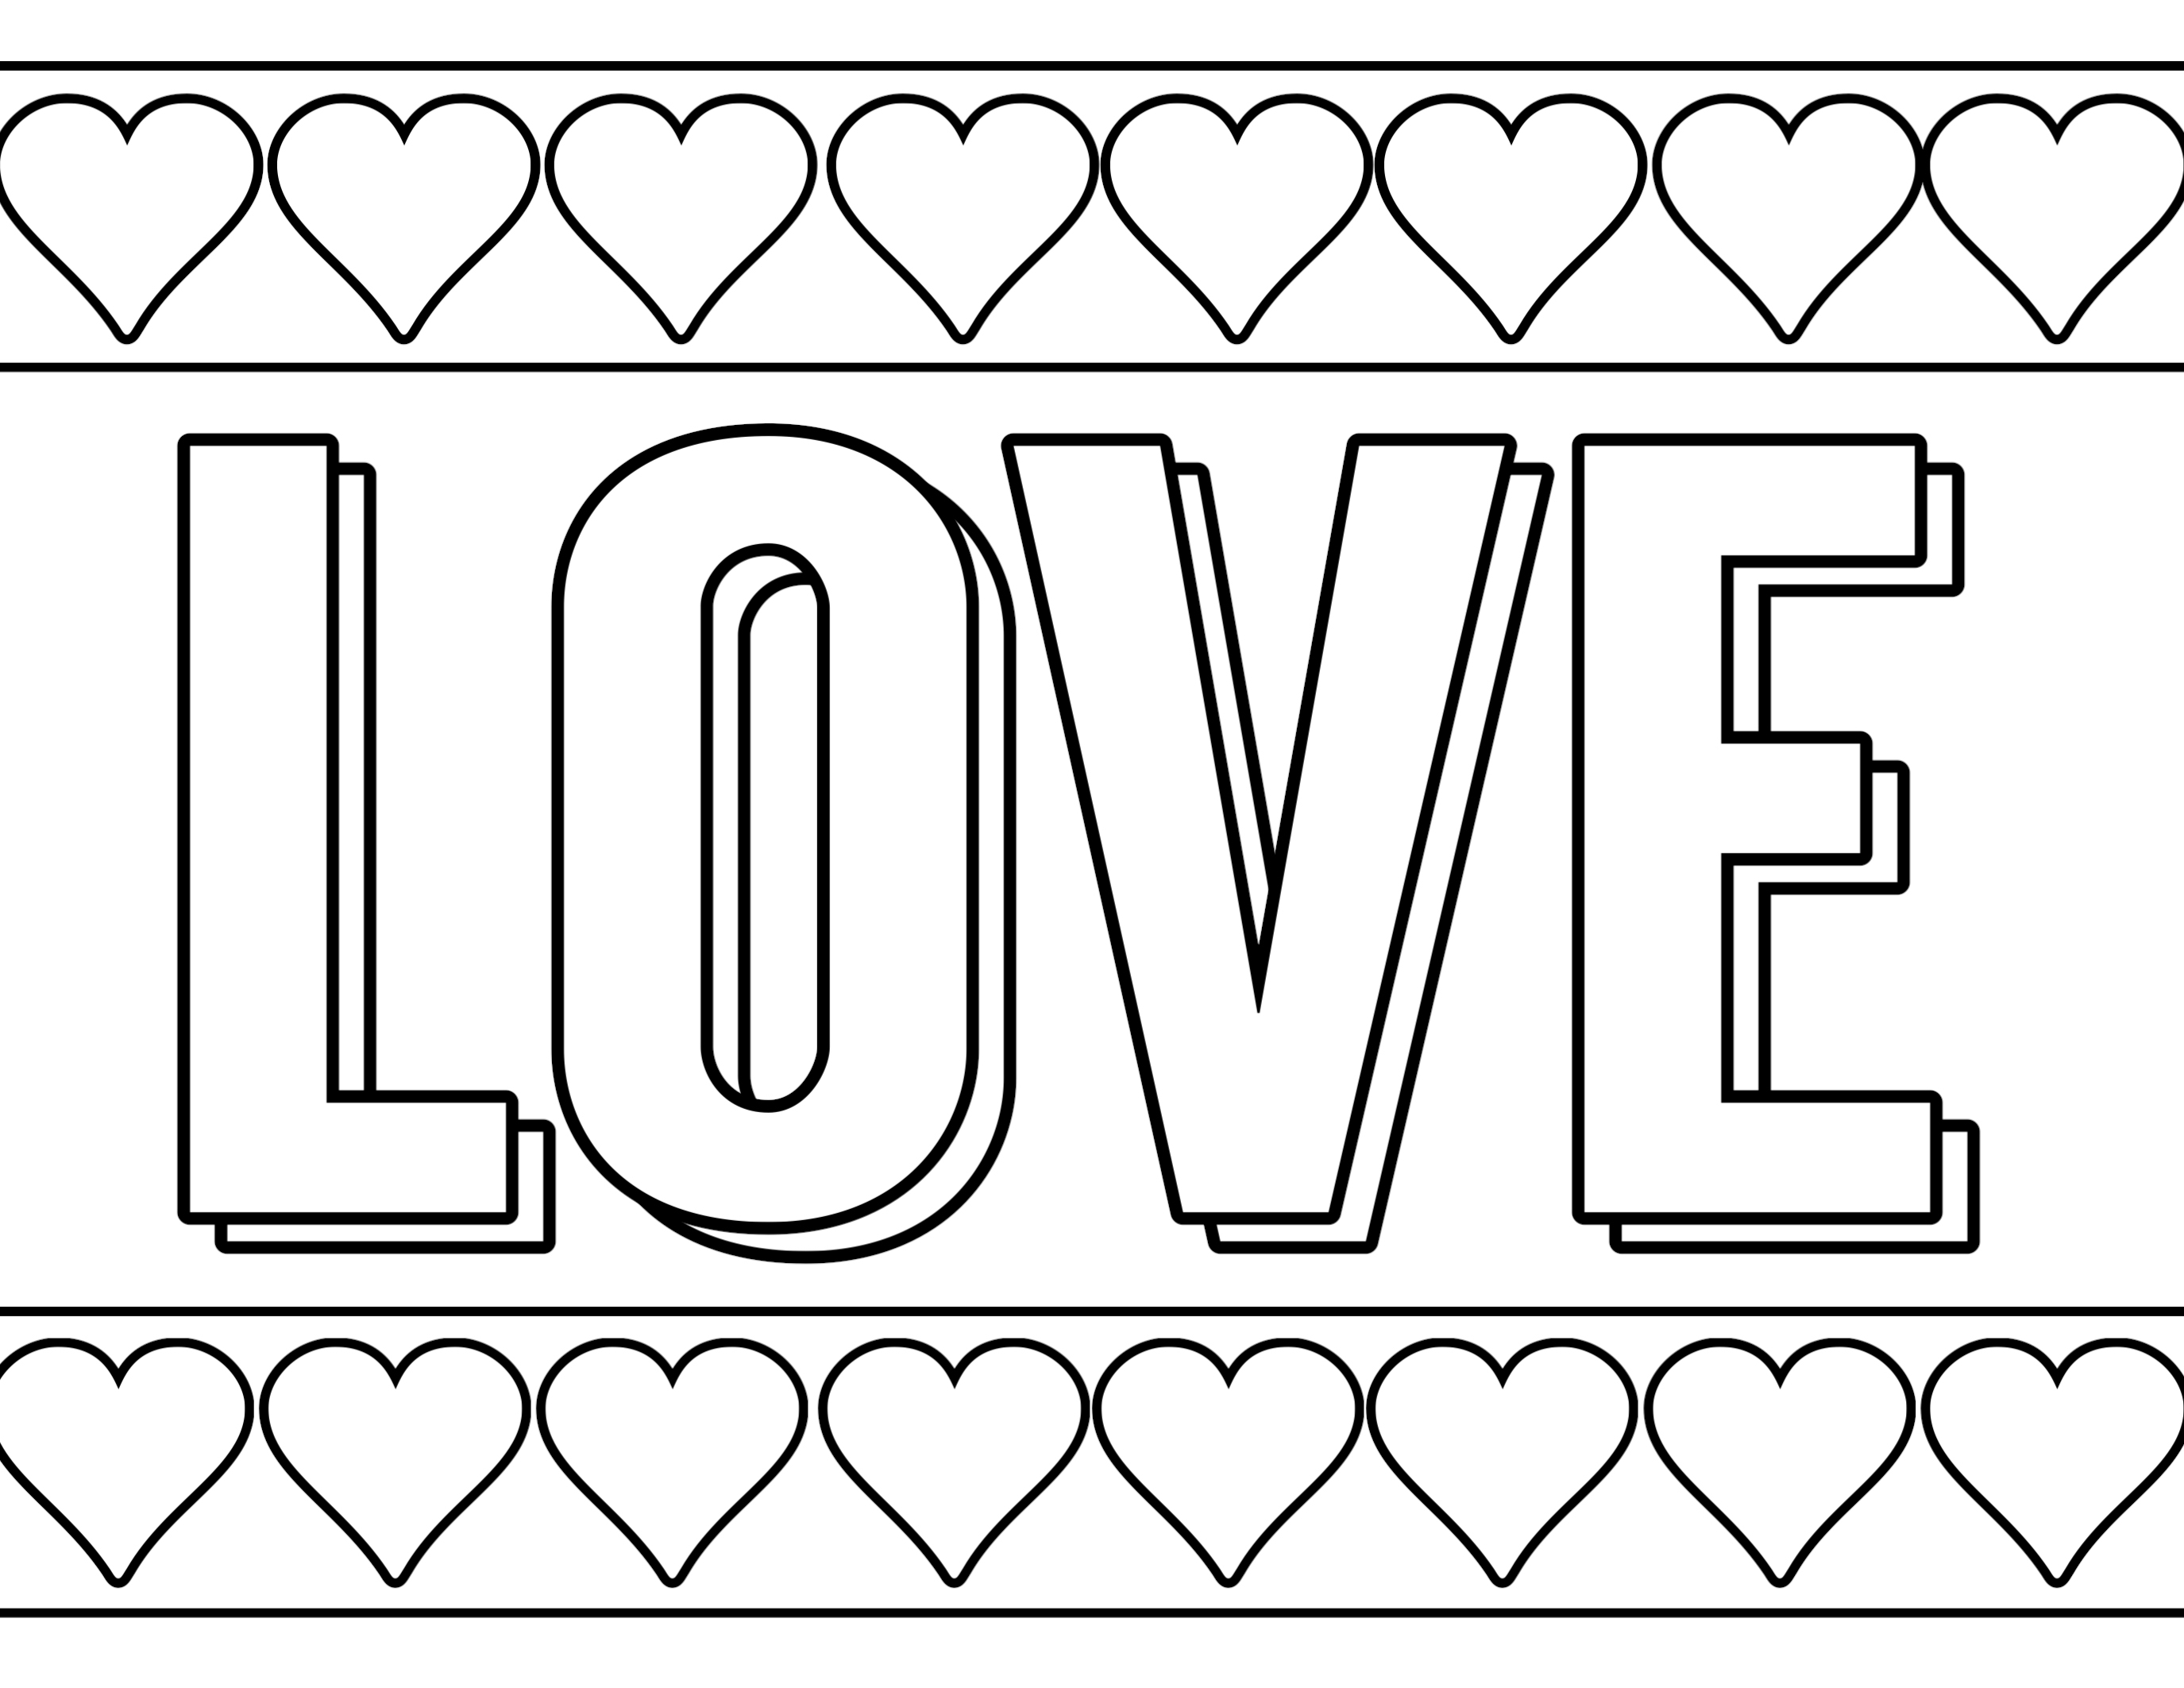 Coloring Pages : Valentines Coloring Page Printablee Pages Chavelle - Free Printable Valentine Coloring Pages